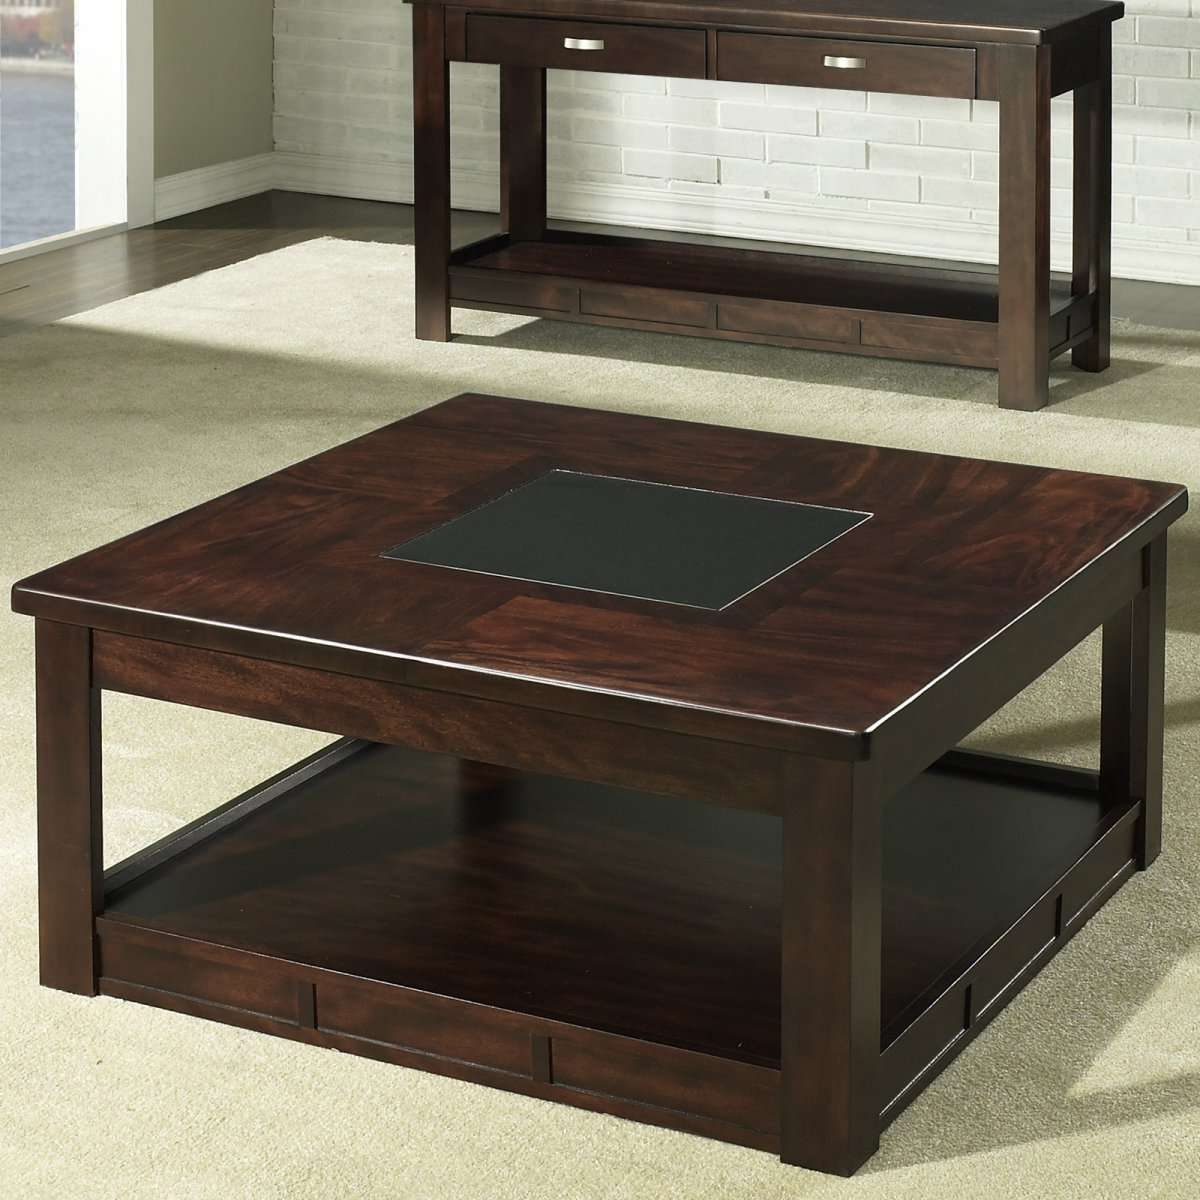 Most Recently Released Large Square Coffee Table With Storage Pertaining To Coffee Tables : Coffee Table Square Wood With Storage Tables Glass (View 14 of 20)